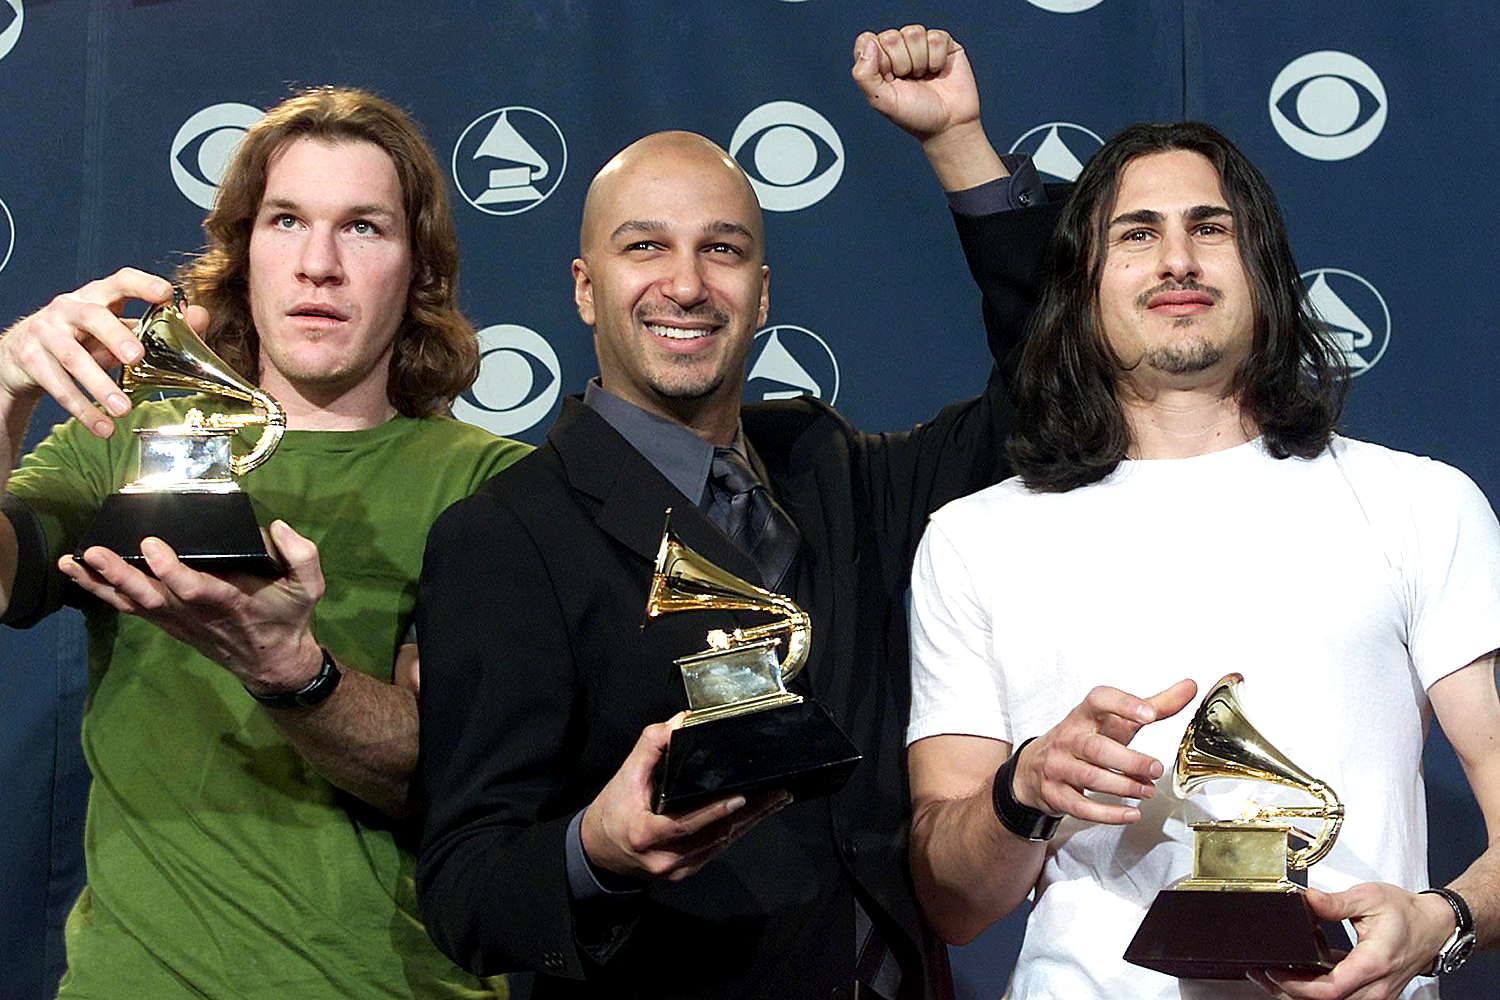 Rage Against the Machine poses with Grammy Awards